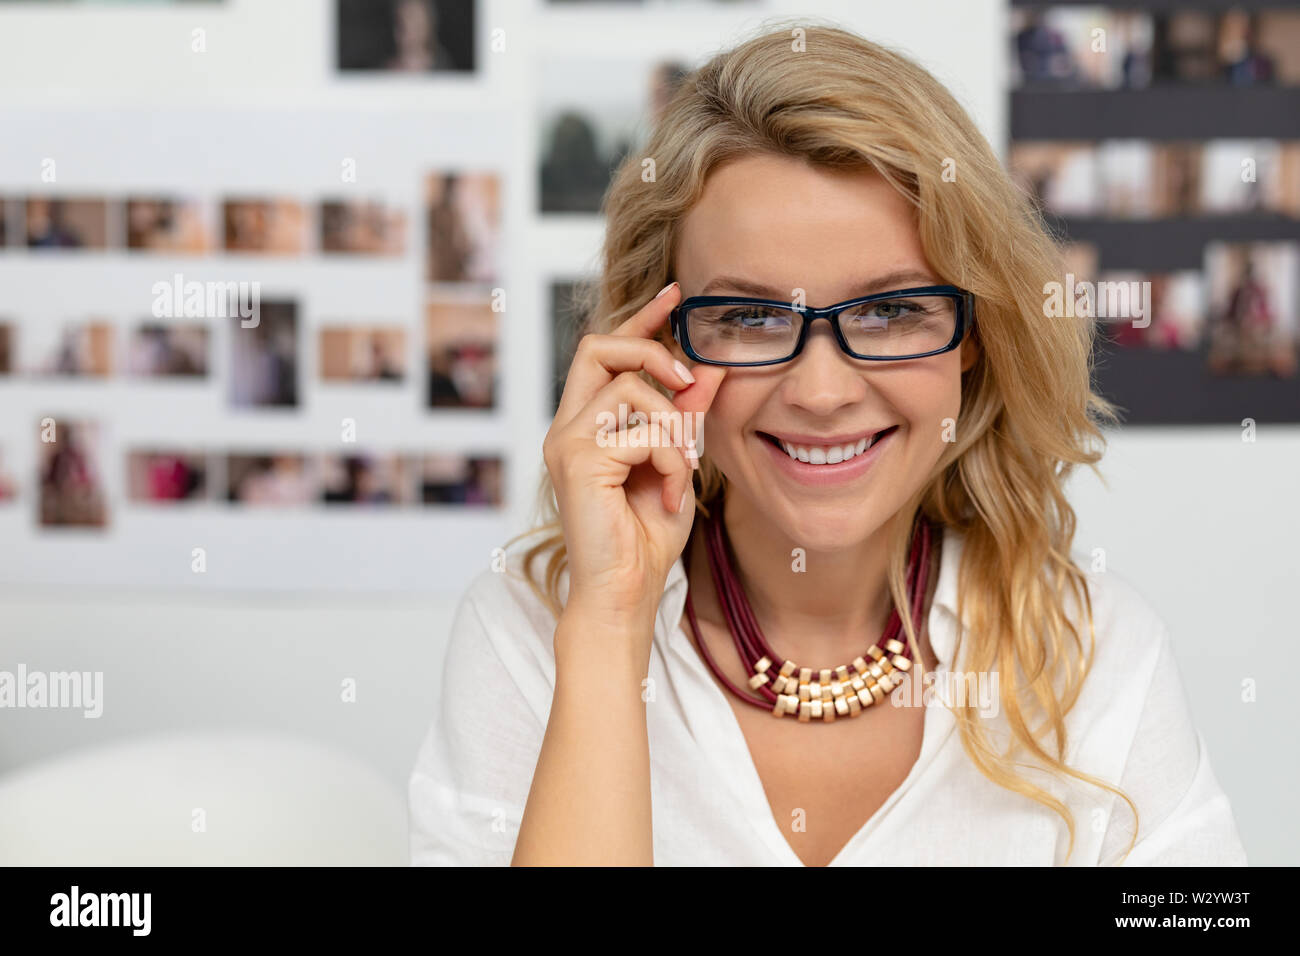 Happy female graphic designer adjusting her spectacle in office - Stock Image